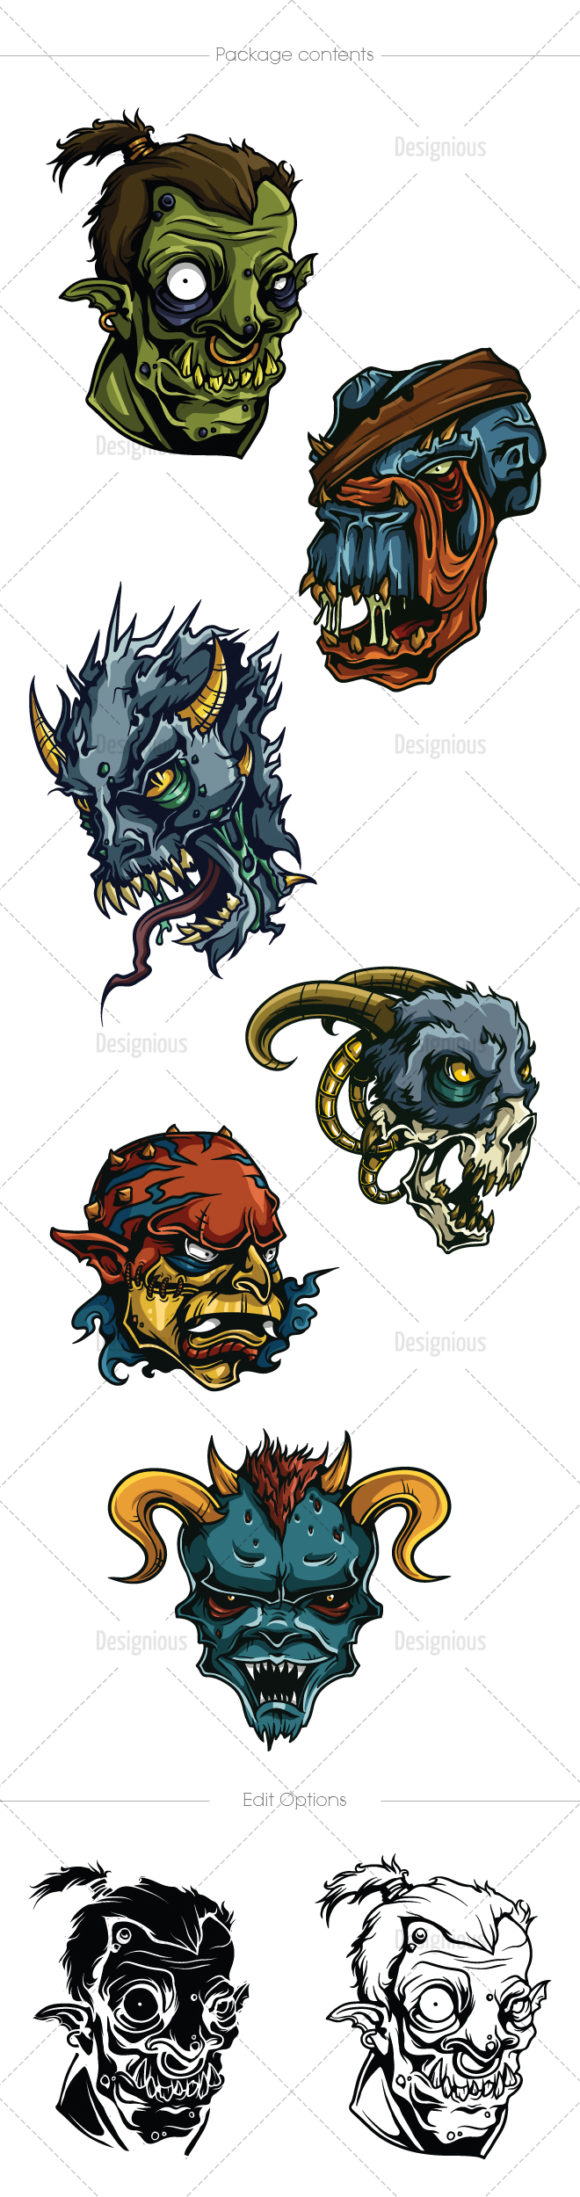 Freaks Vector Pack 4 products designious vector freaks 4 large 1